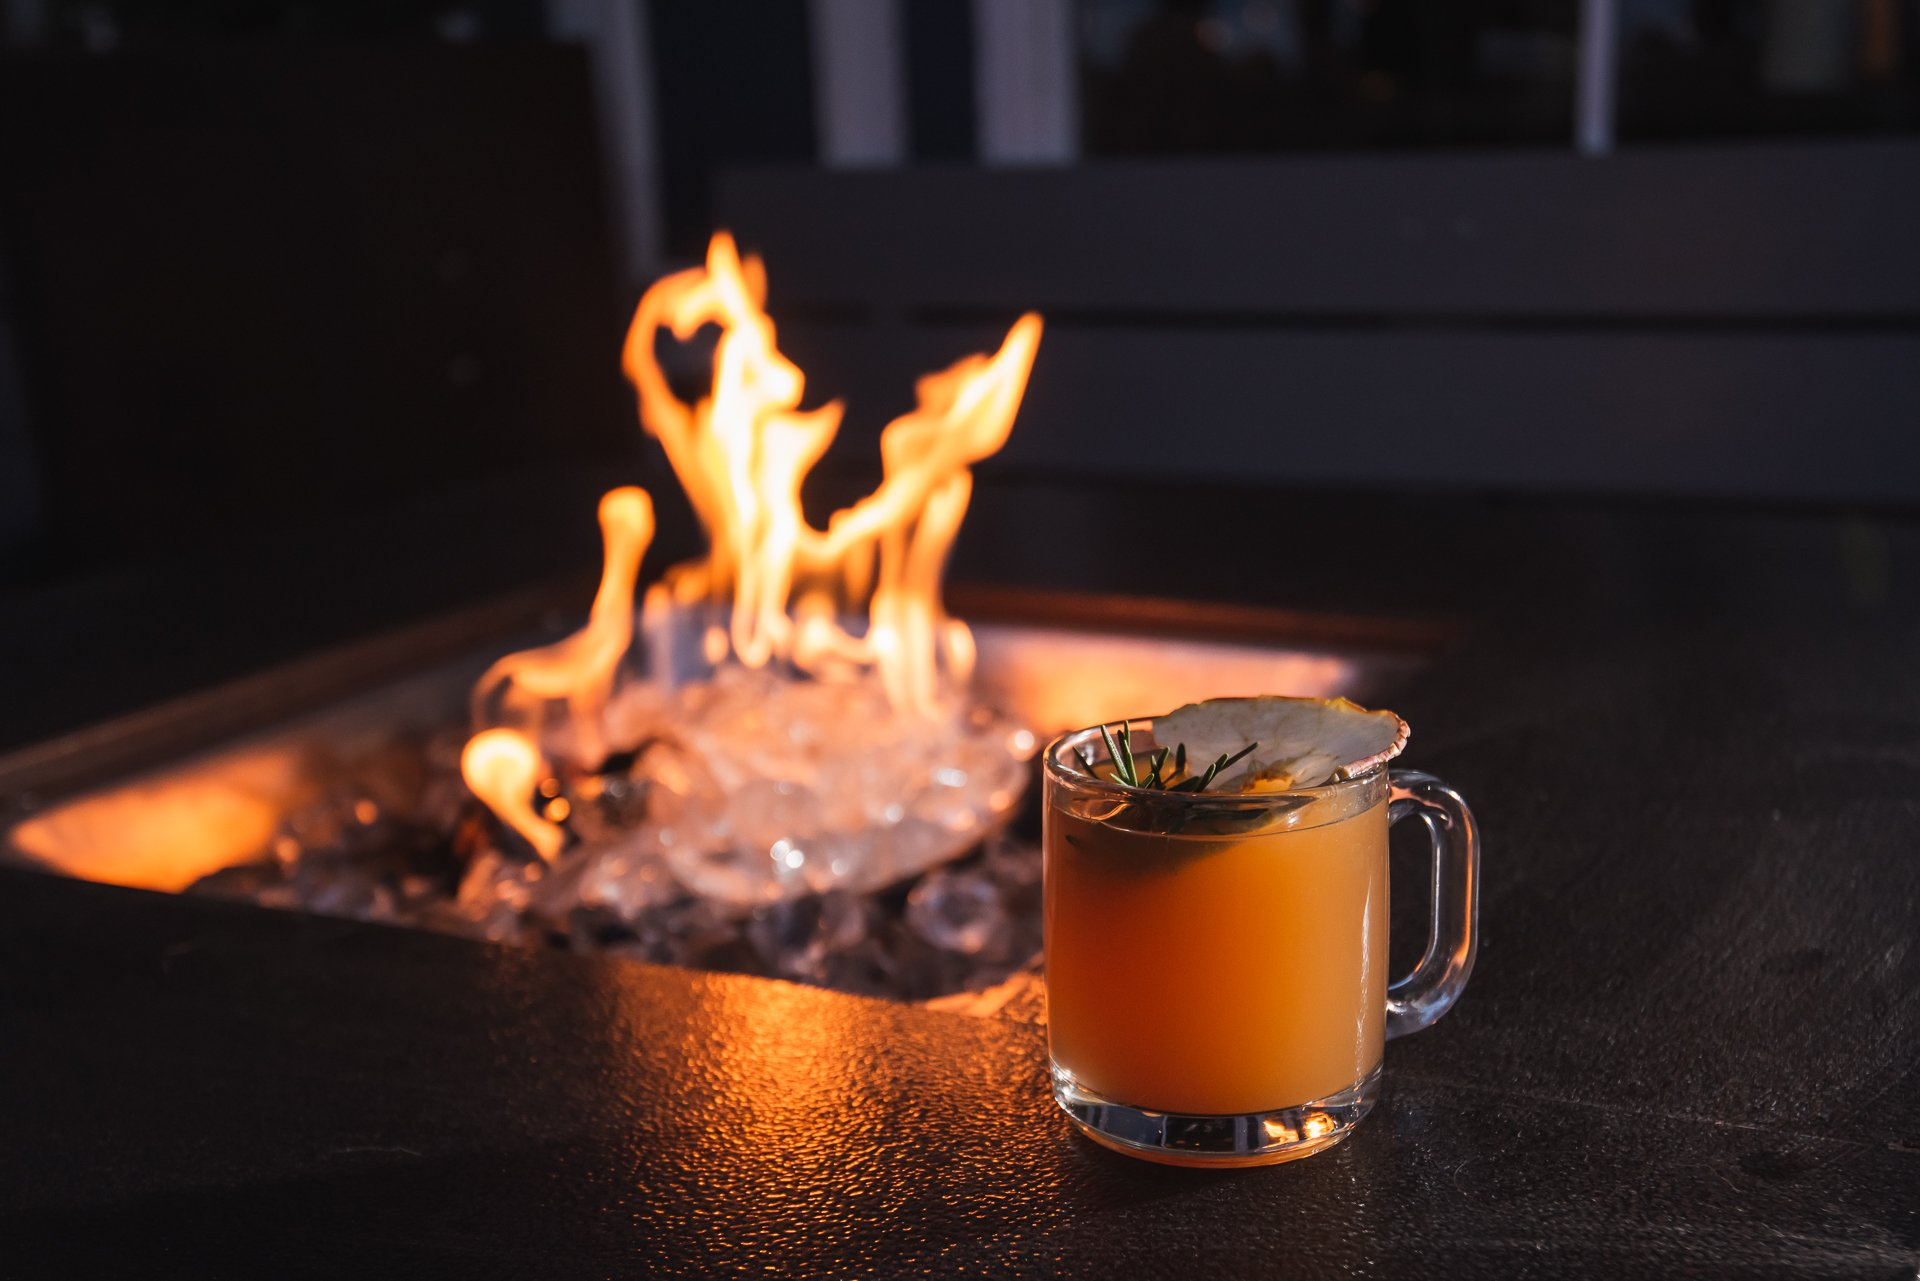 Warm up with a drink by the fire at the Salt Line. Photograph by Paul Kim.